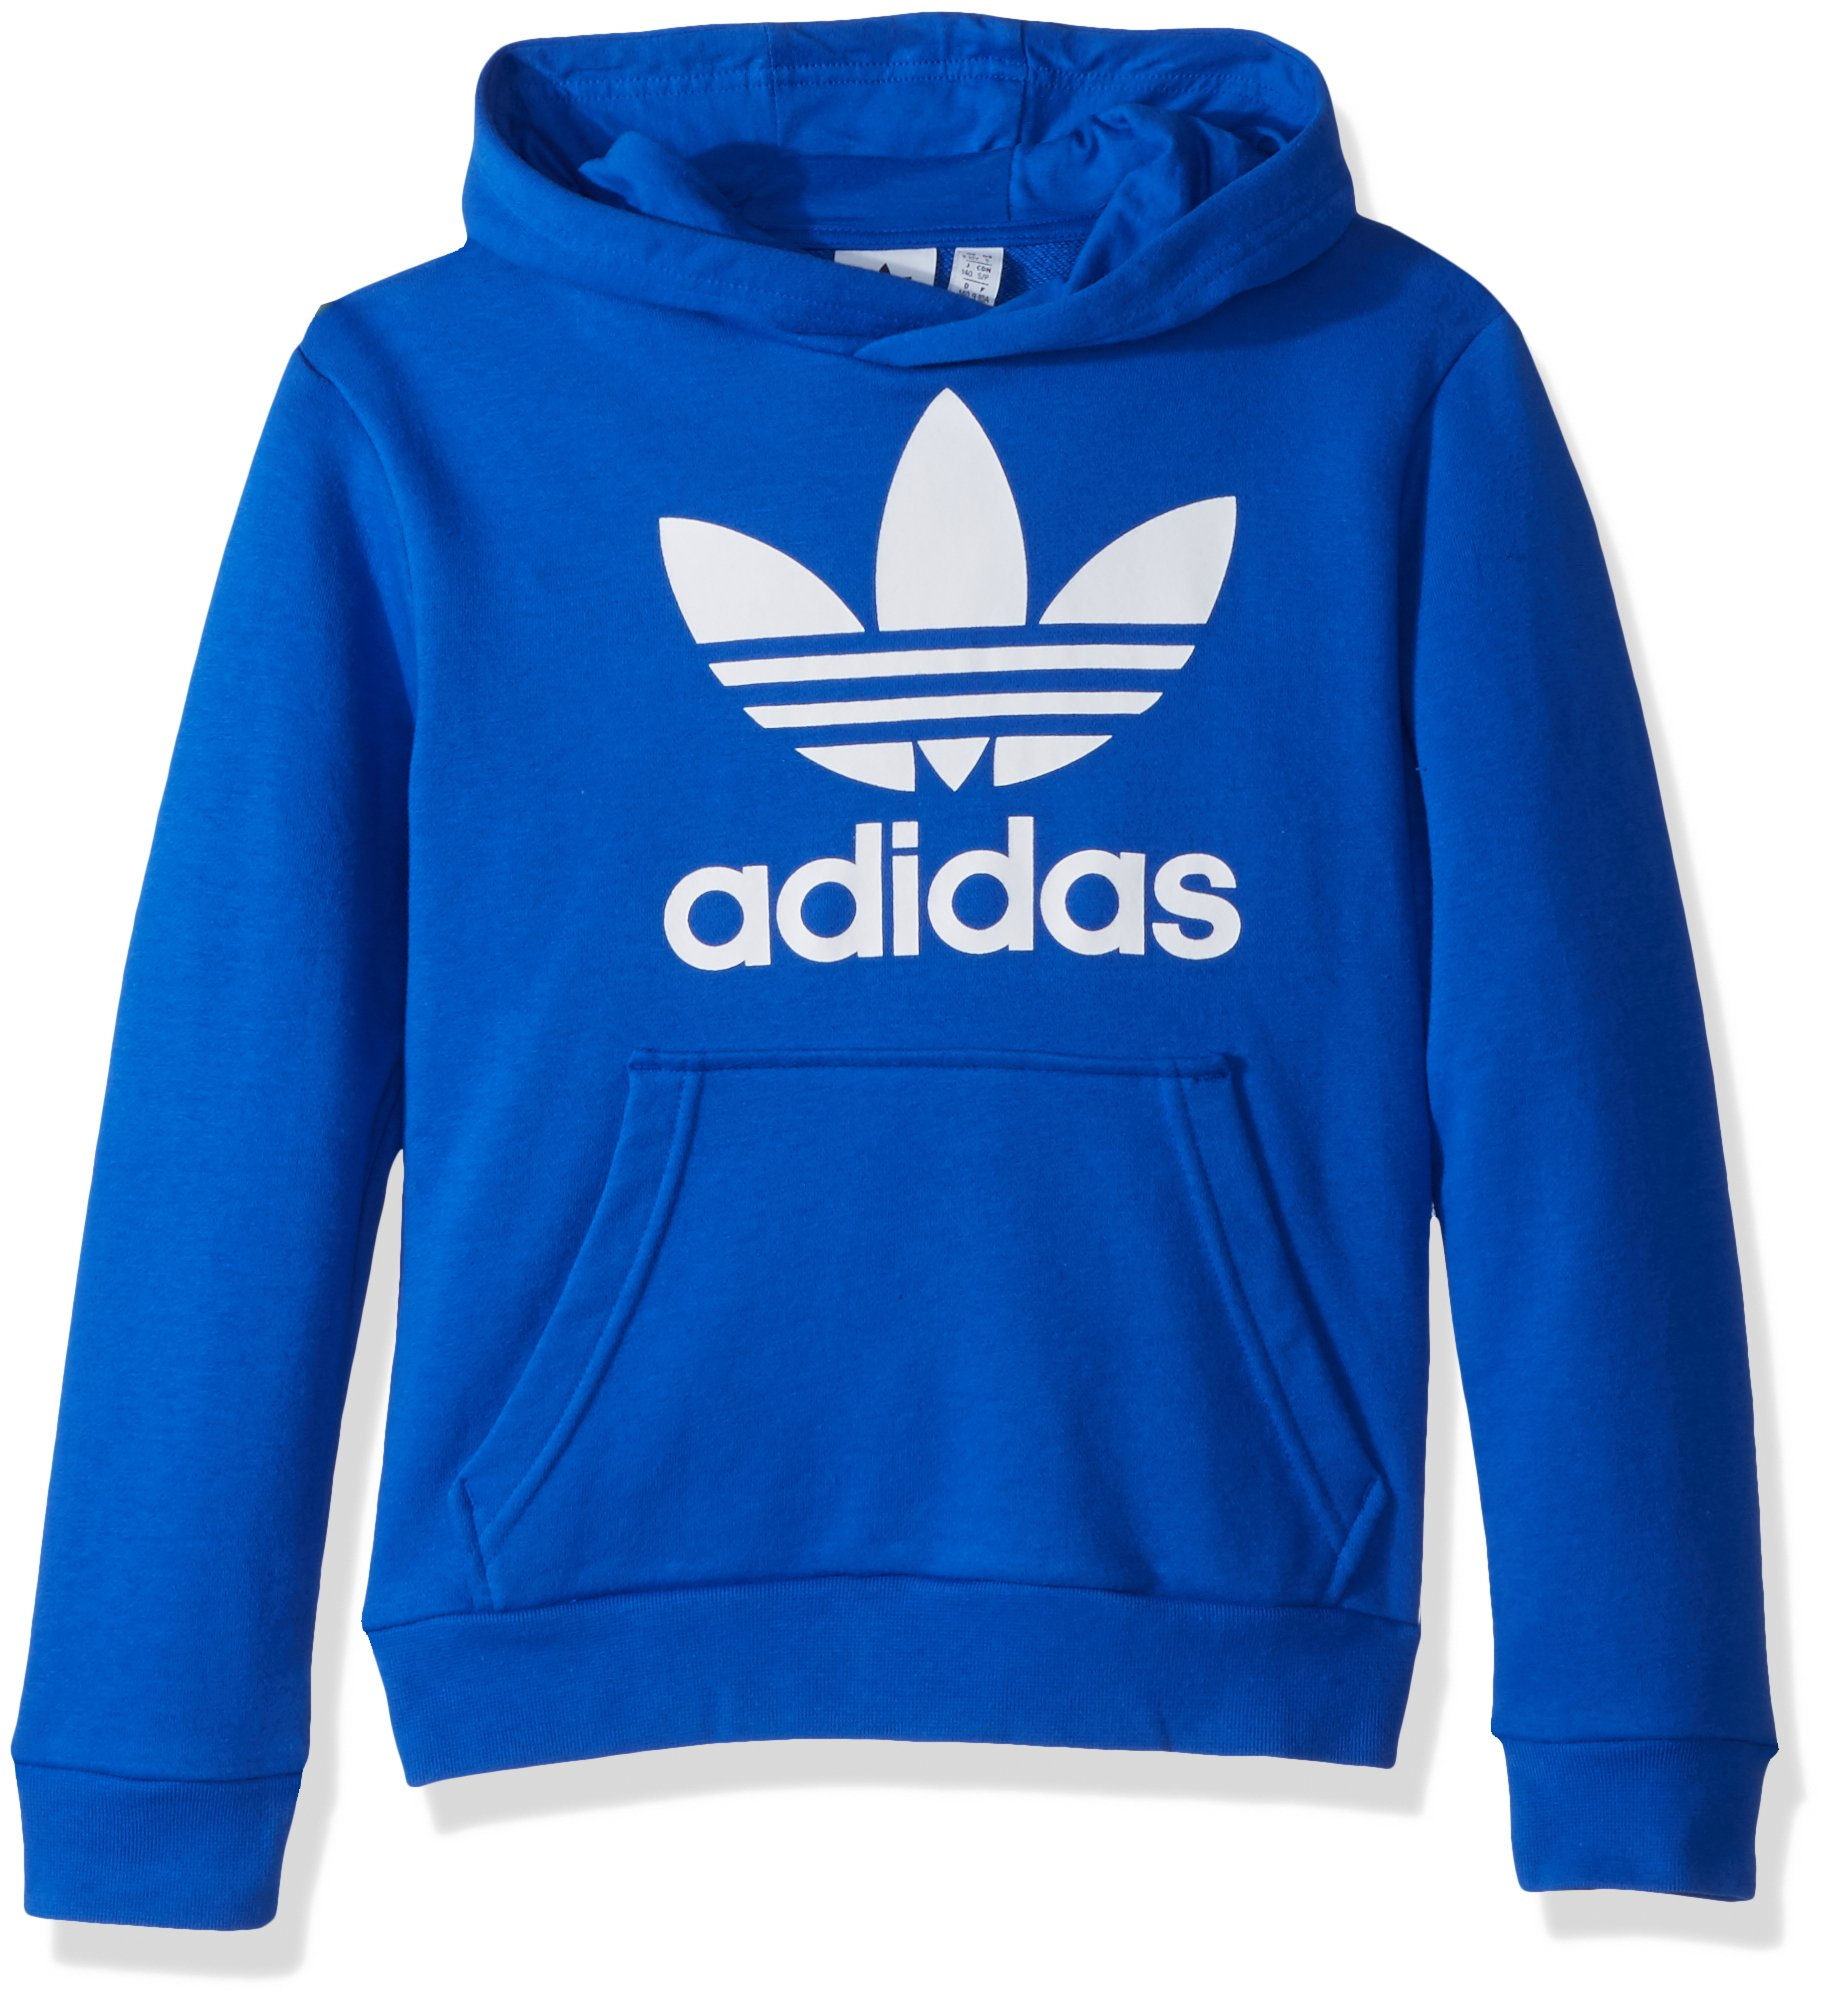 adidas Originals Kids' Big Originals Trefoil Hoodie, Blue/White, XL by adidas Originals (Image #1)